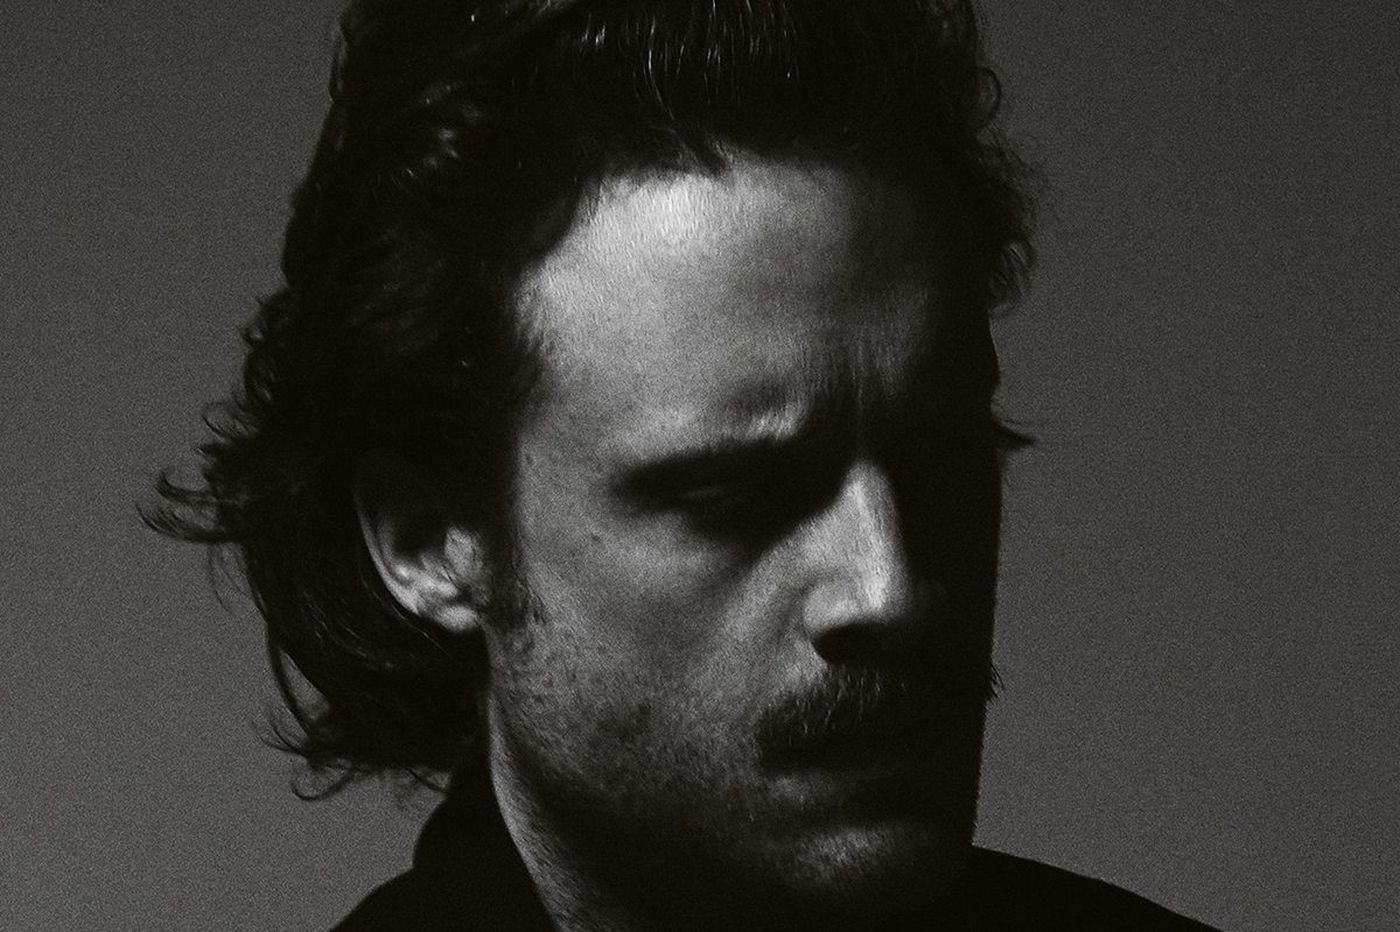 This time, Father John Misty let his music do the talking at the Mann Center